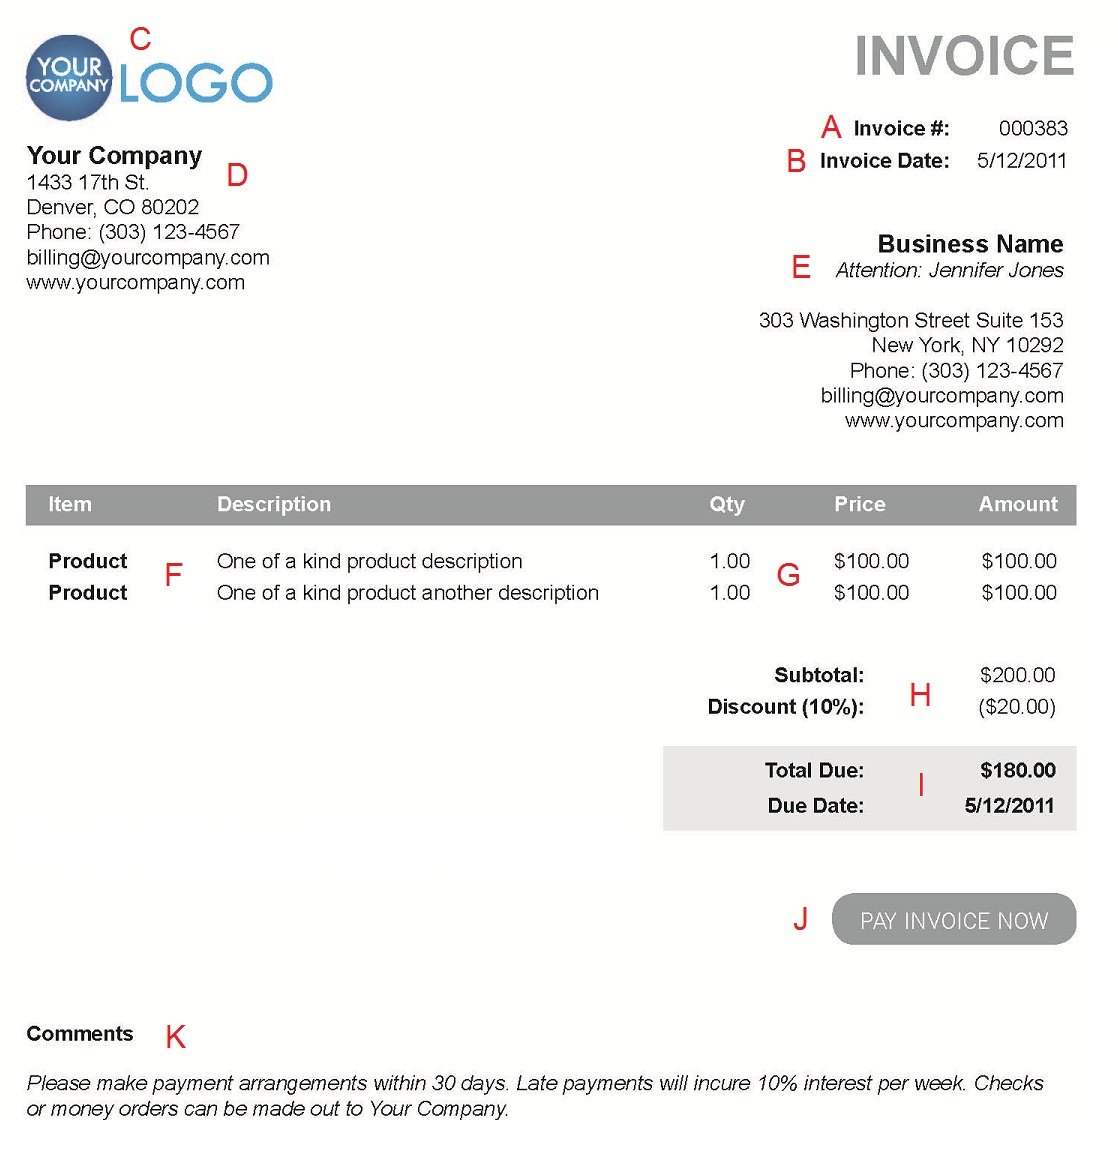 Coolmathgamesus  Stunning The  Different Sections Of An Electronic Payment Invoice With Fetching A  With Comely Mazda Cx  Touring Invoice Price Also Invoicing Programs For Small Business In Addition Invoice Bill Format And Current Invoice As Well As Invoice Format In Doc Additionally Invoice Collection Letter From Paysimplecom With Coolmathgamesus  Fetching The  Different Sections Of An Electronic Payment Invoice With Comely A  And Stunning Mazda Cx  Touring Invoice Price Also Invoicing Programs For Small Business In Addition Invoice Bill Format From Paysimplecom